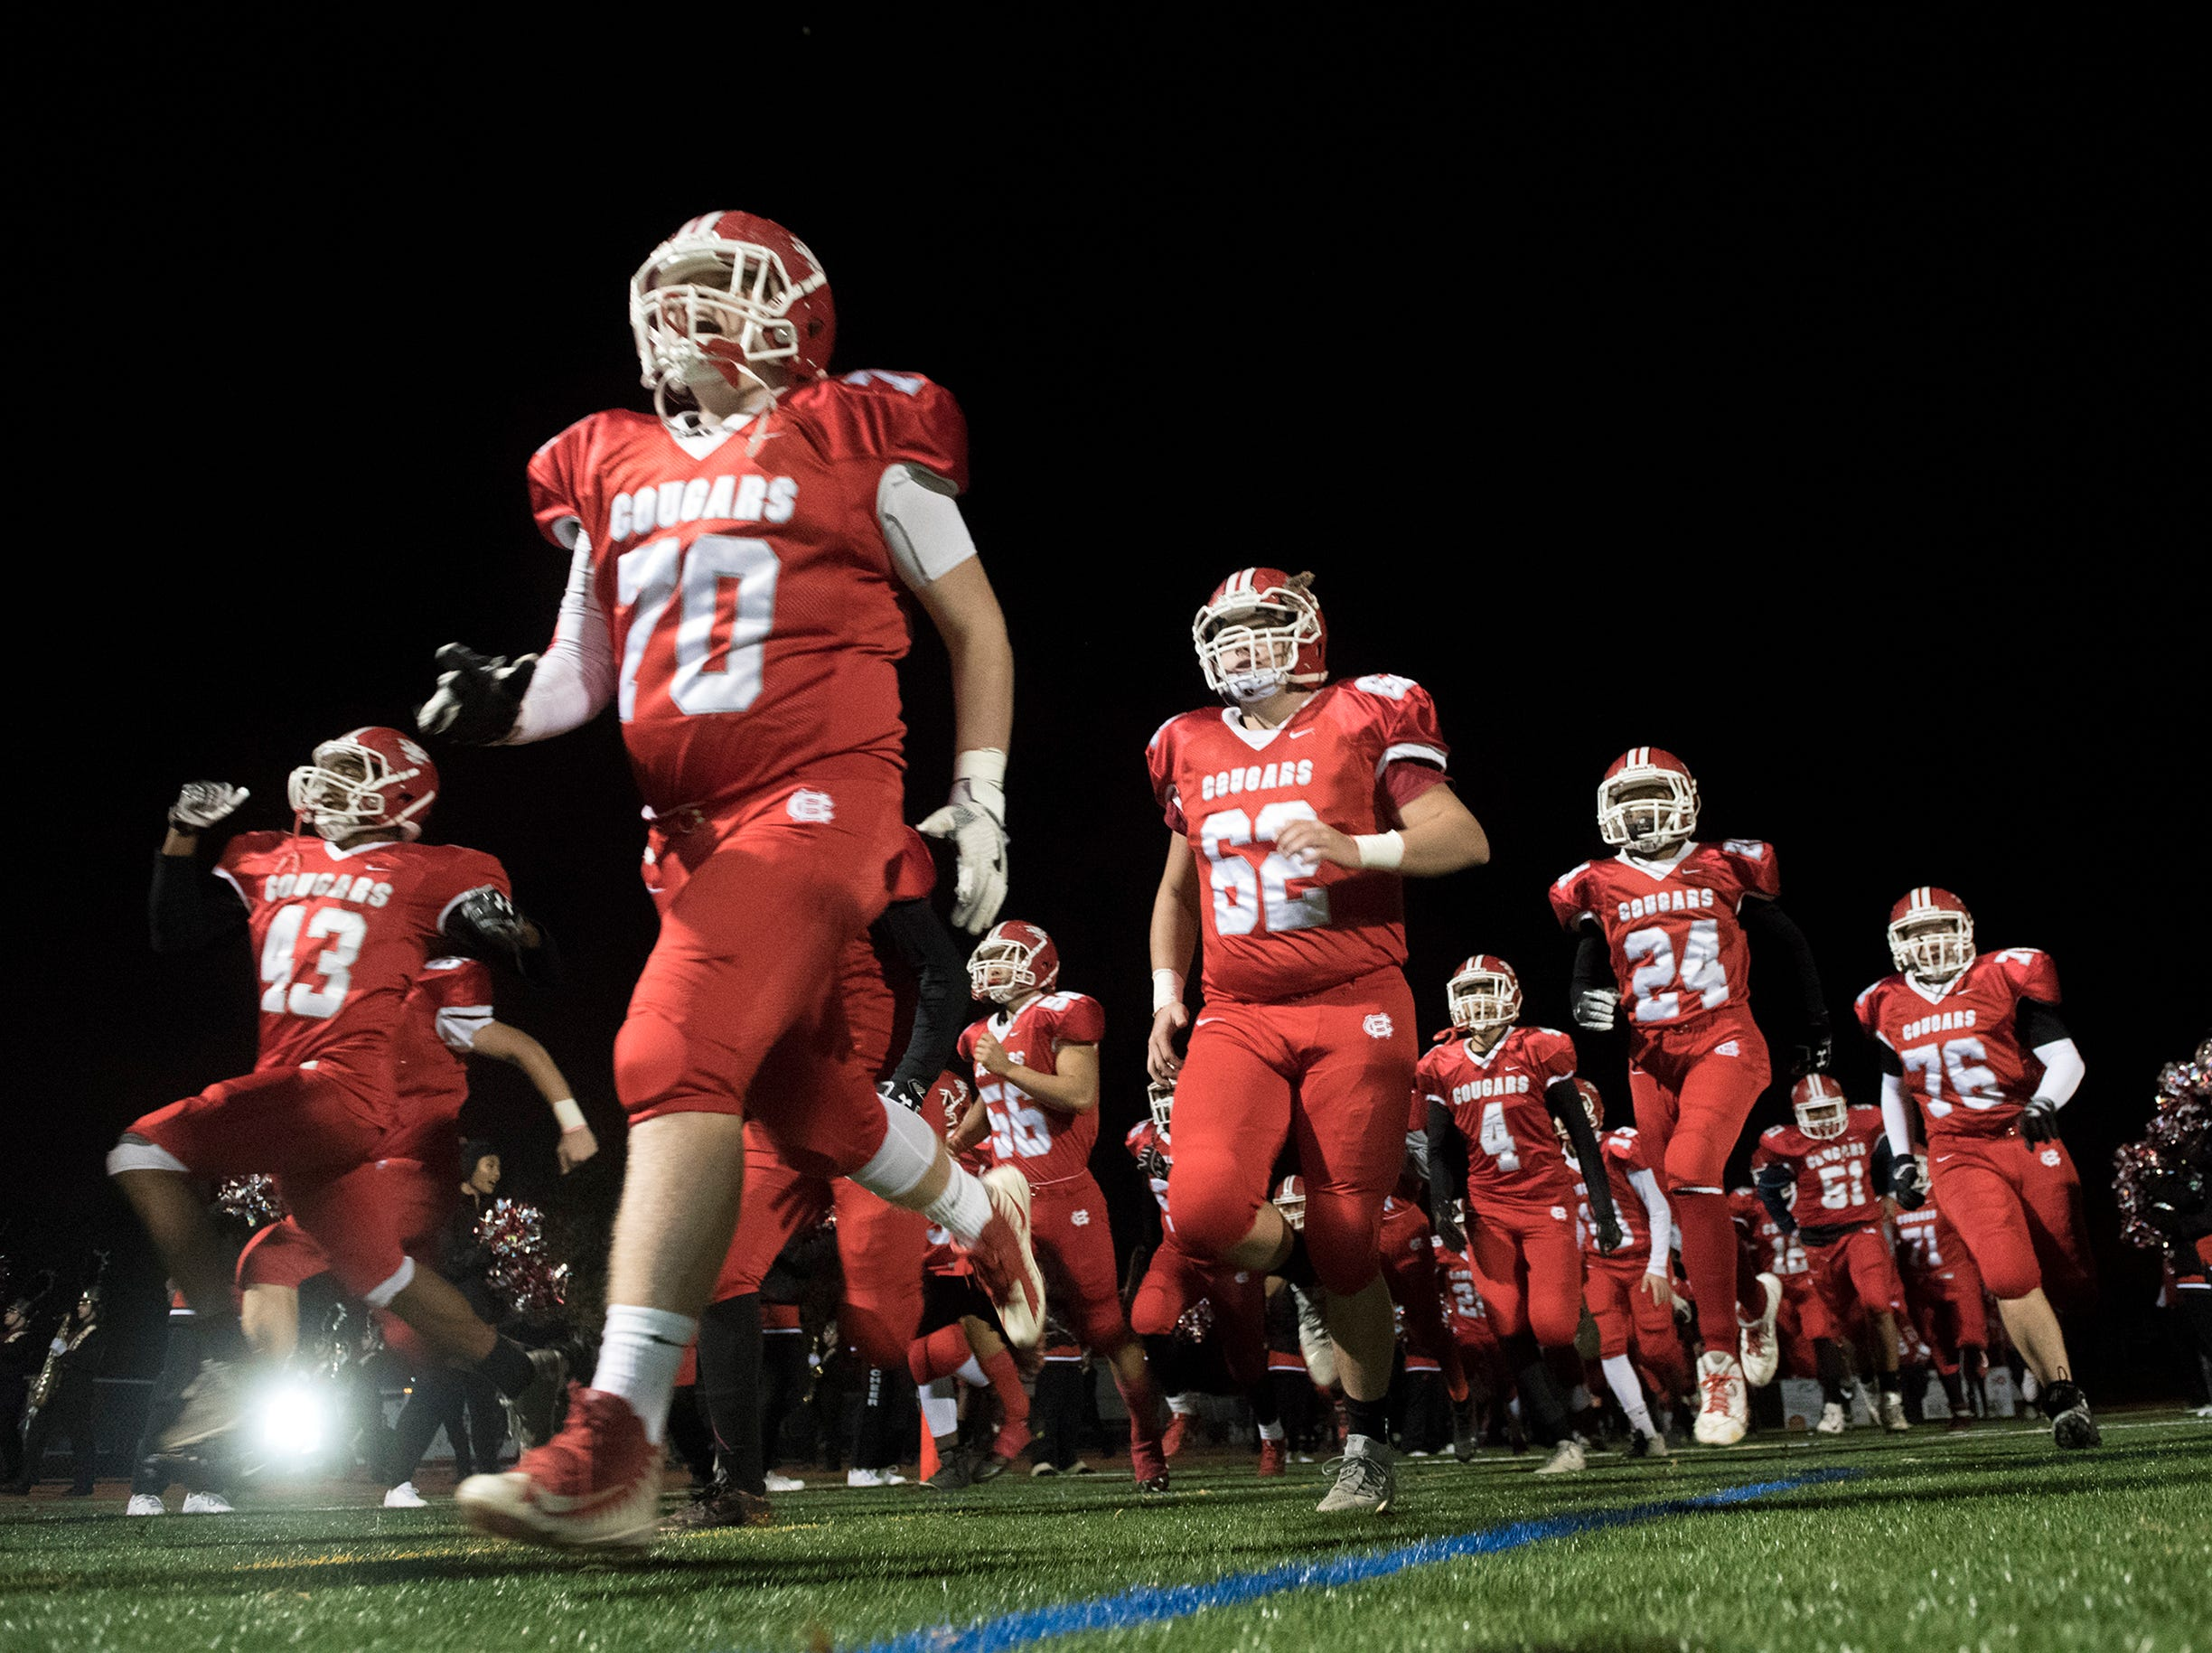 Cherry Hill East takes the field before an annual East-West game Wednesday, Nov. 21, 2018 at Cherry Hill West High School in Cherry Hill, N.J. West won 22-7.